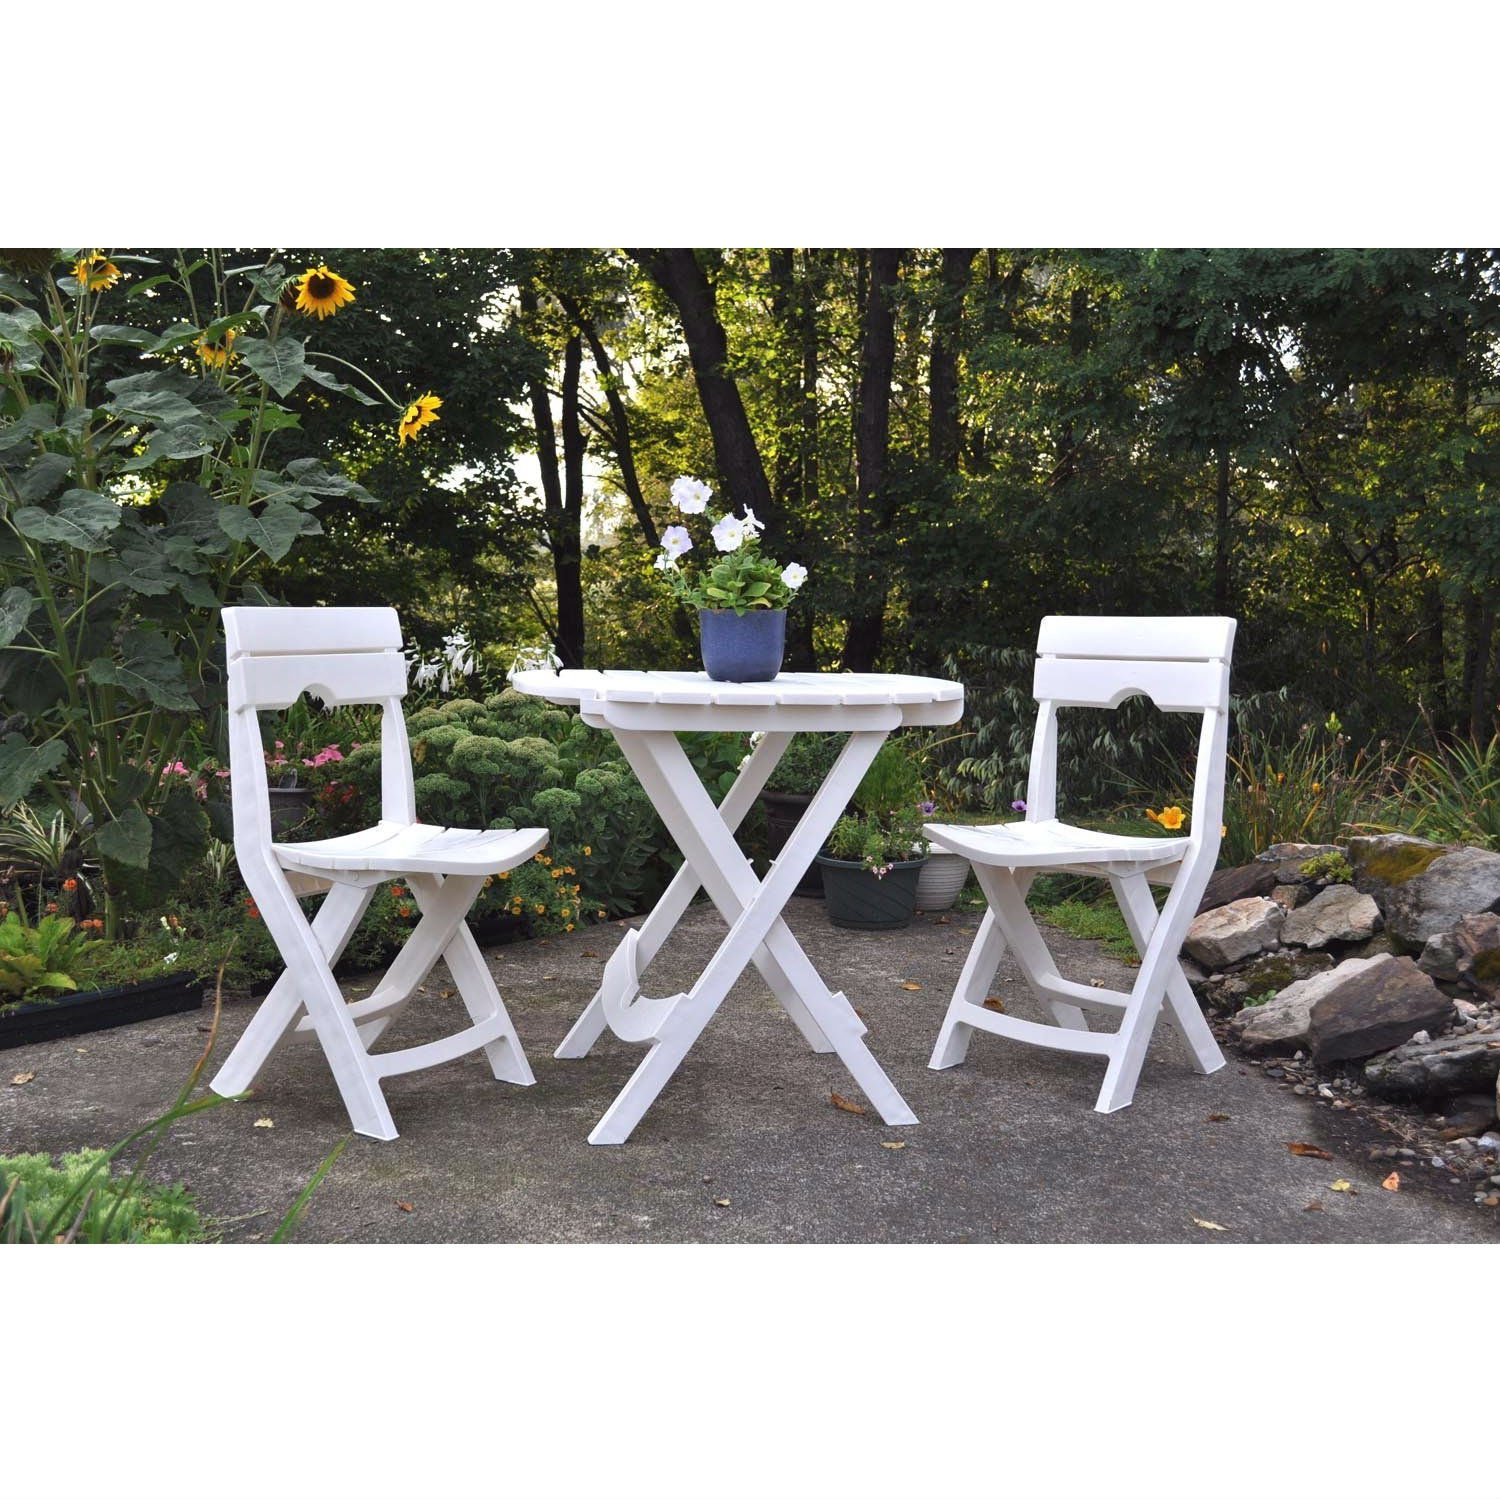 3-Piece Folding Outdoor Patio Furniture Bistro Set in White, W3CBS899 :  This 3-Piece Folding Outdoor Patio Furniture Bistro Set in White is the ideal on-the-go bistro set. Folding quickly and compactly, the set travels along for any outdoor recreation, including camping, picnics, tailgating, and more. Use in the backyard for extra seating at parties, or on the balcony or patio. Comfortable and sturdy, this resin set is a long-lasting value. Proudly made in the USA. Built-in umbrella hole holds most standard umbrellas; High-quality resin material is lightweight enough for everyone to handle.